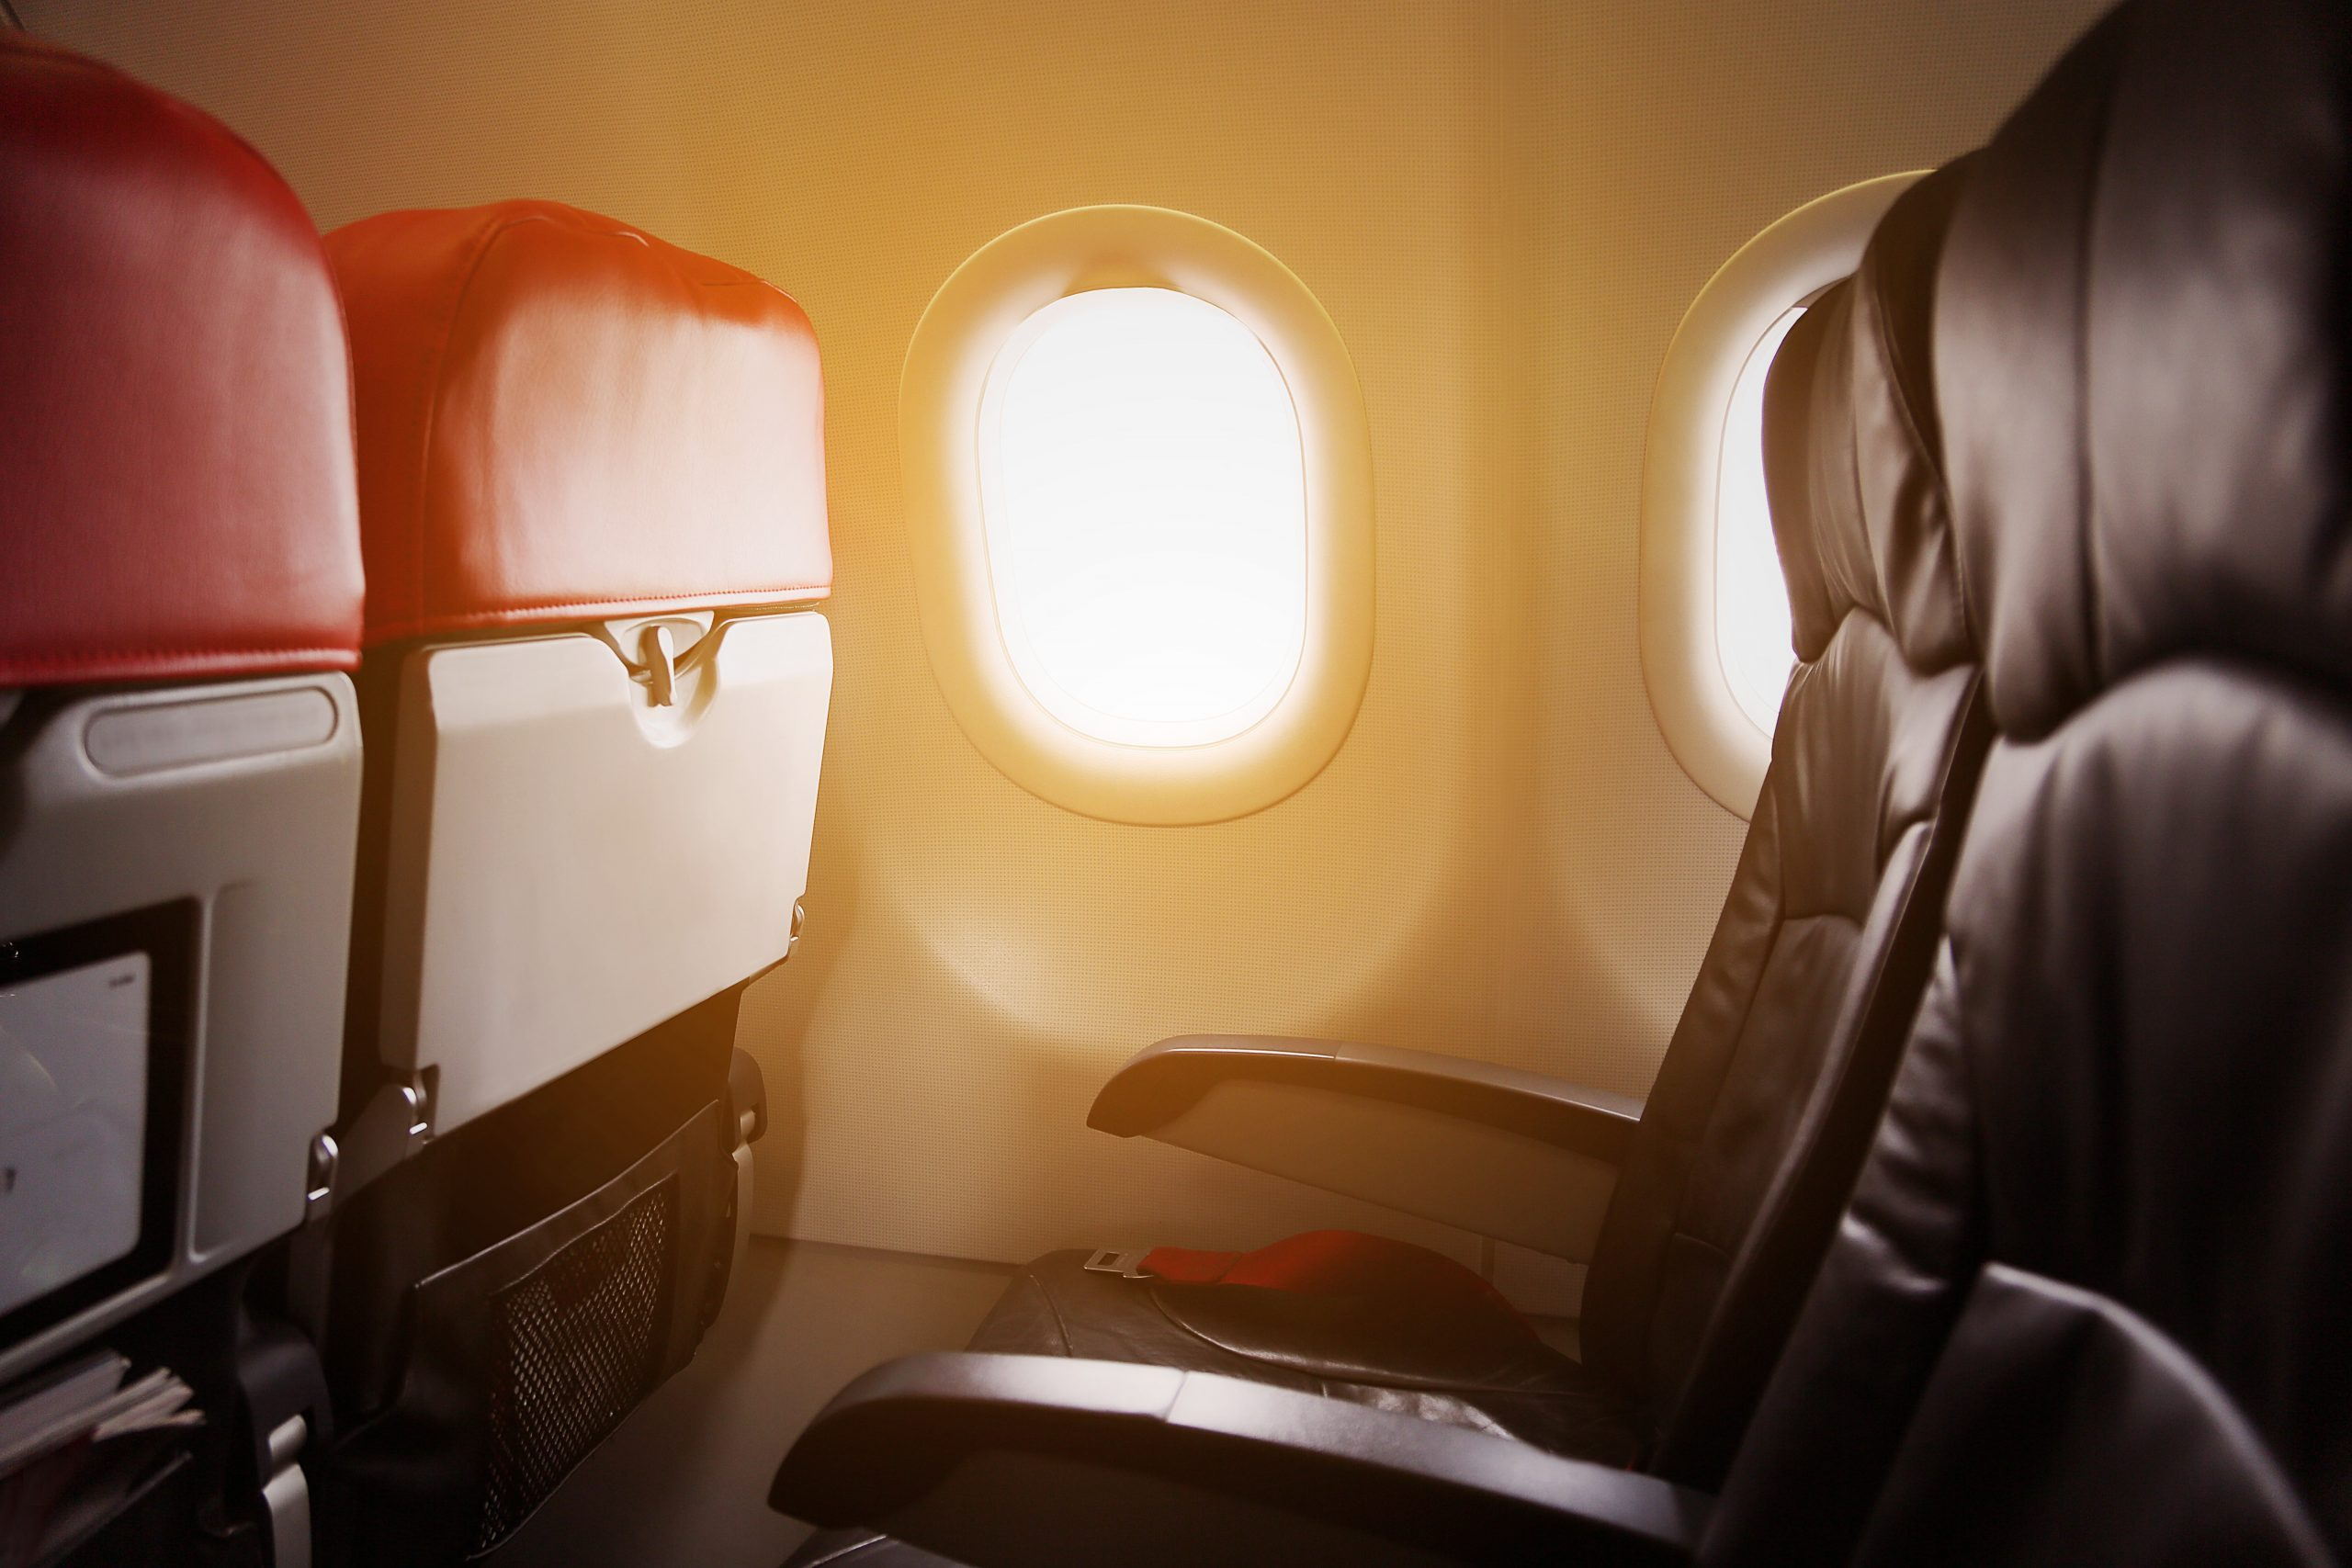 Lonely travel by airplane to somewhere, Journey for business by airplane and see out of the window, Sky view from air travel on high level, Airplane interior for first class level and support VIP.